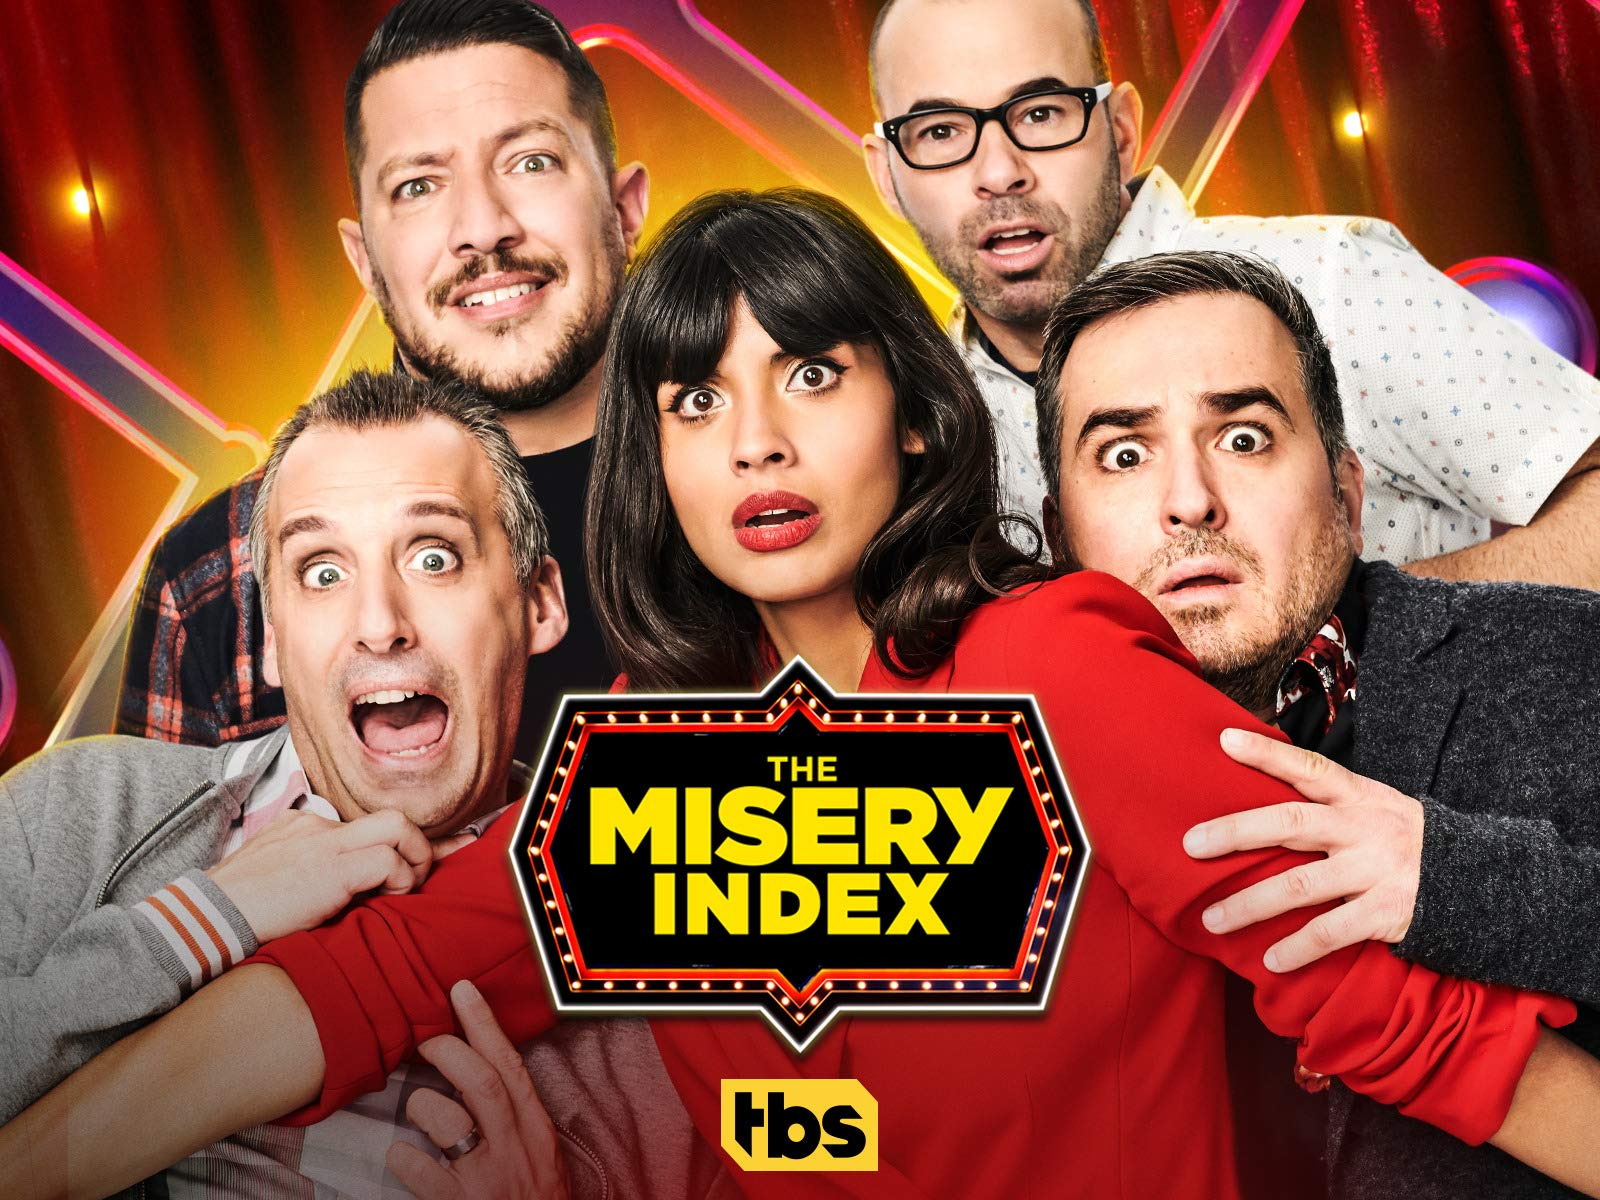 Amazon.com: Watch The Misery Index Season 1 | Prime Video